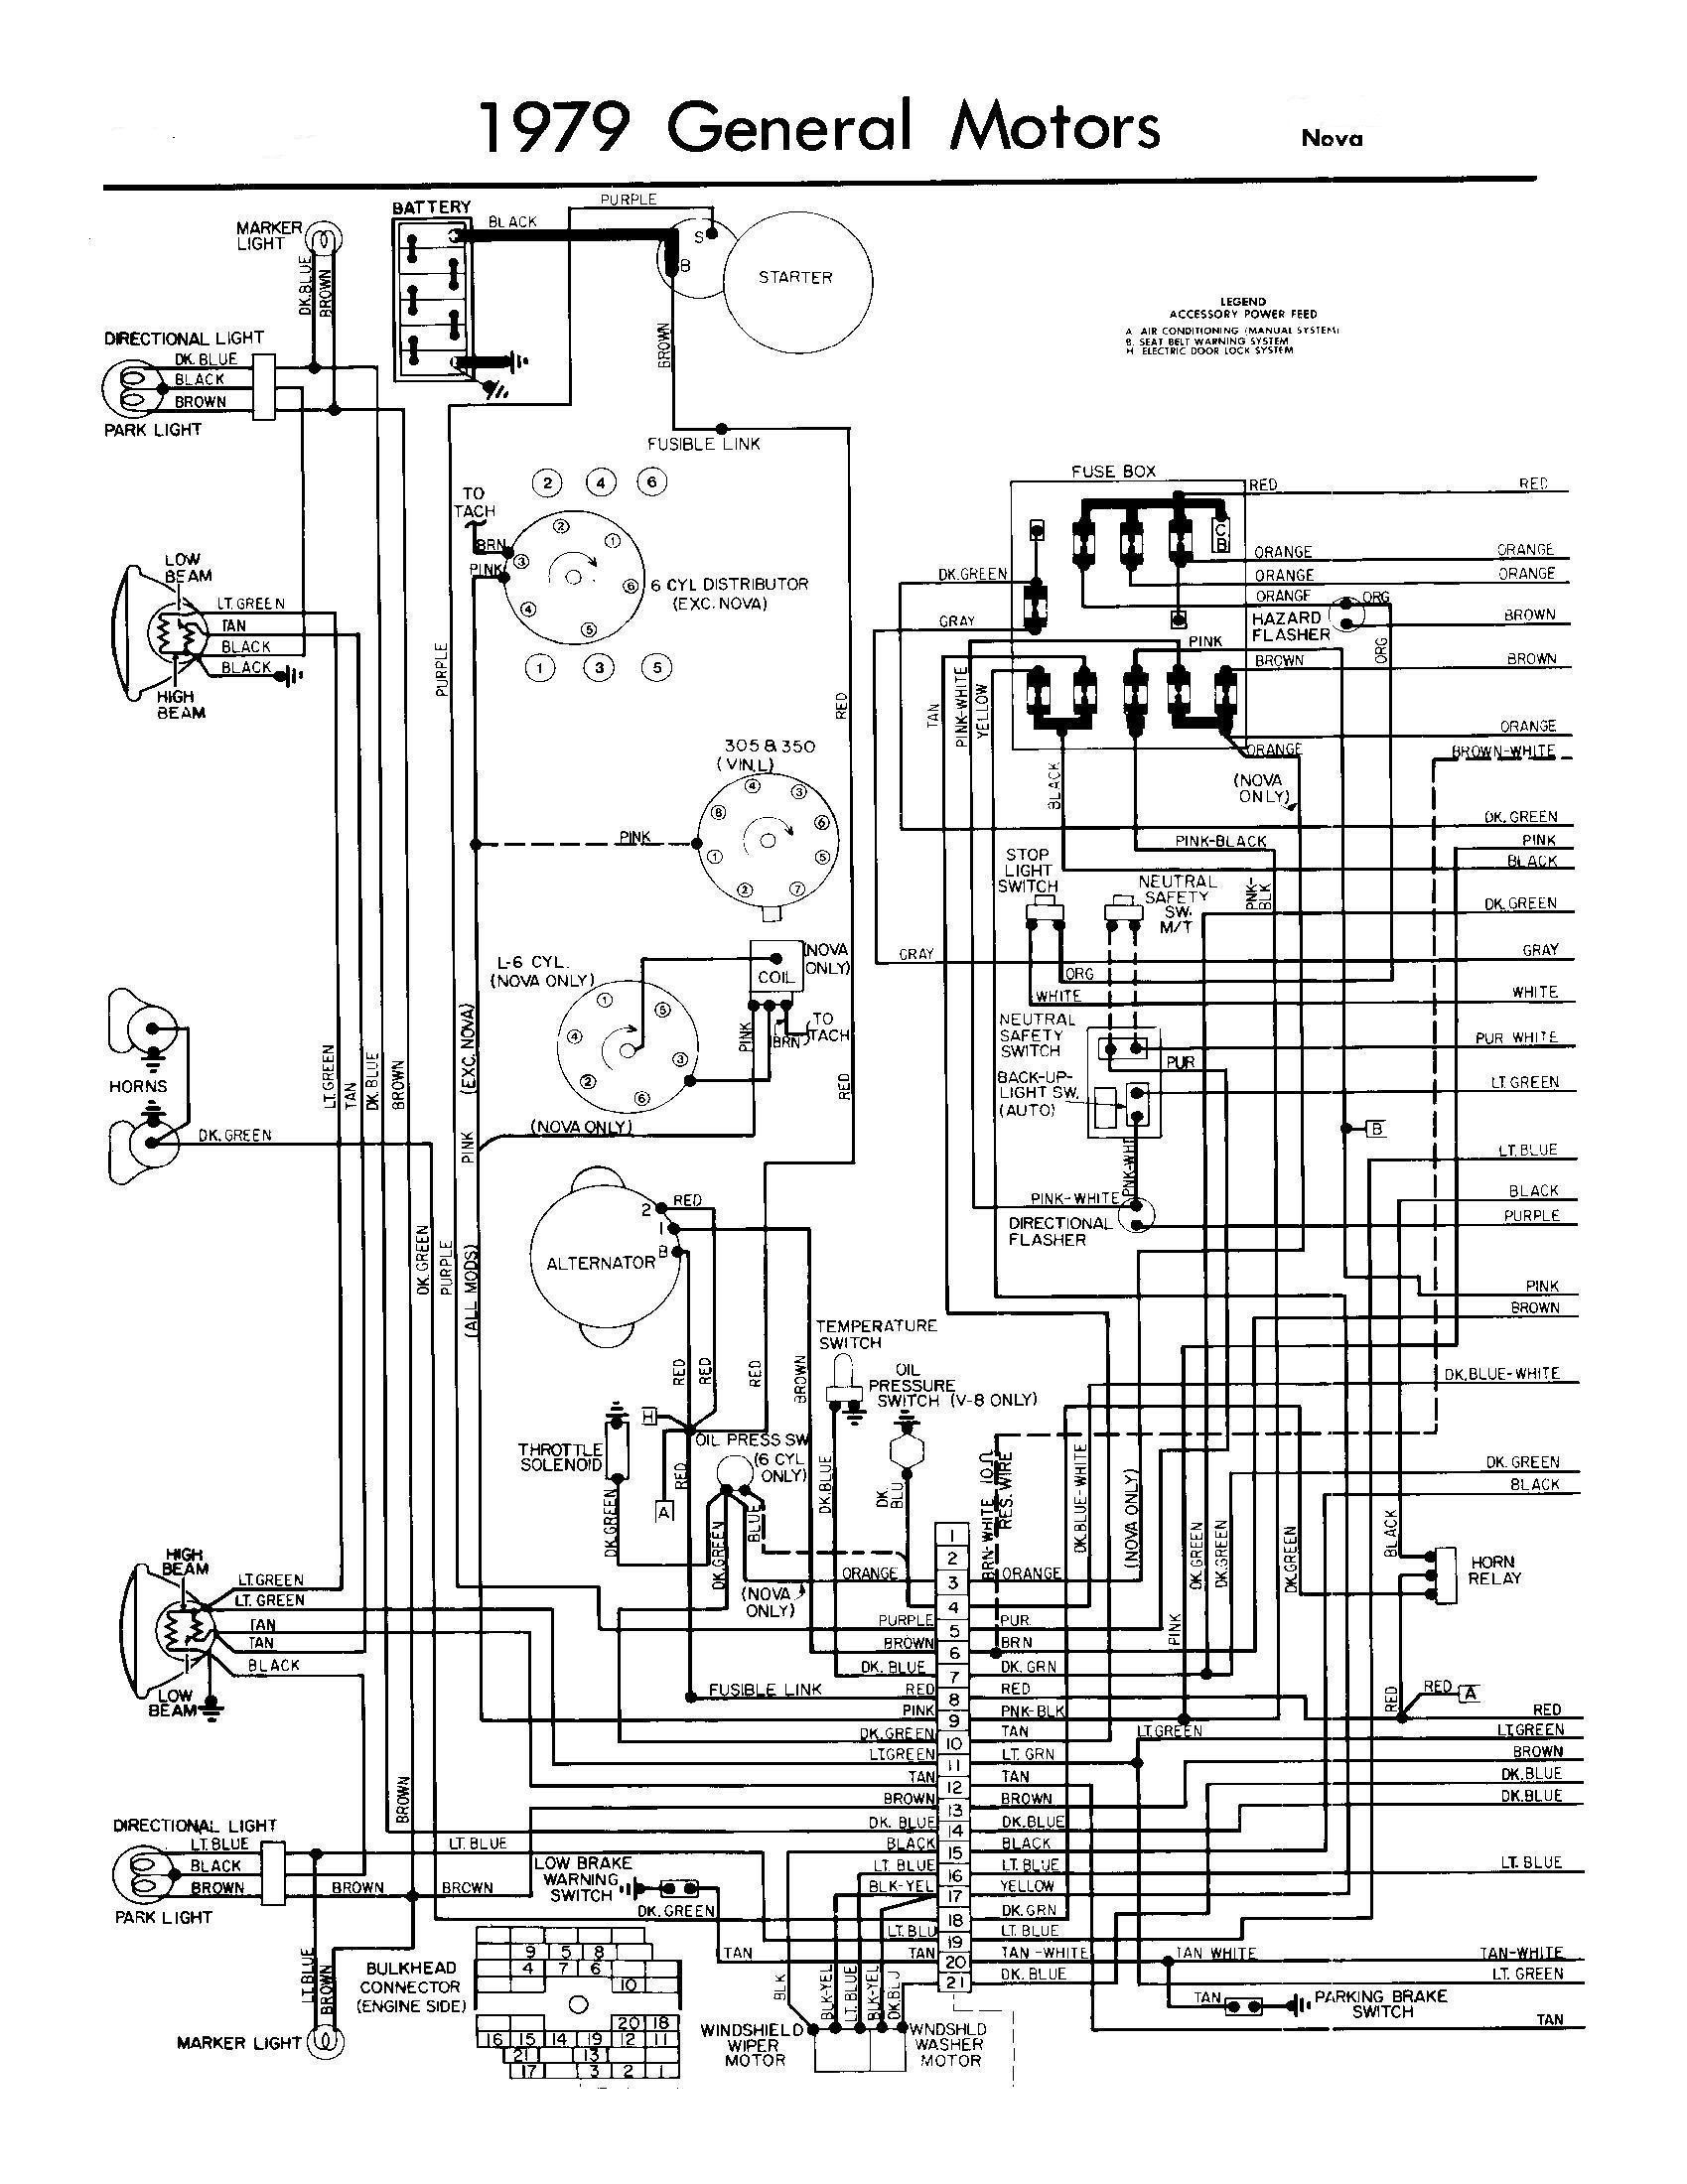 2005 Dodge Grand Caravan Fuse Box Diagram Trusted Wiring 2001 1996 Panel House 2008